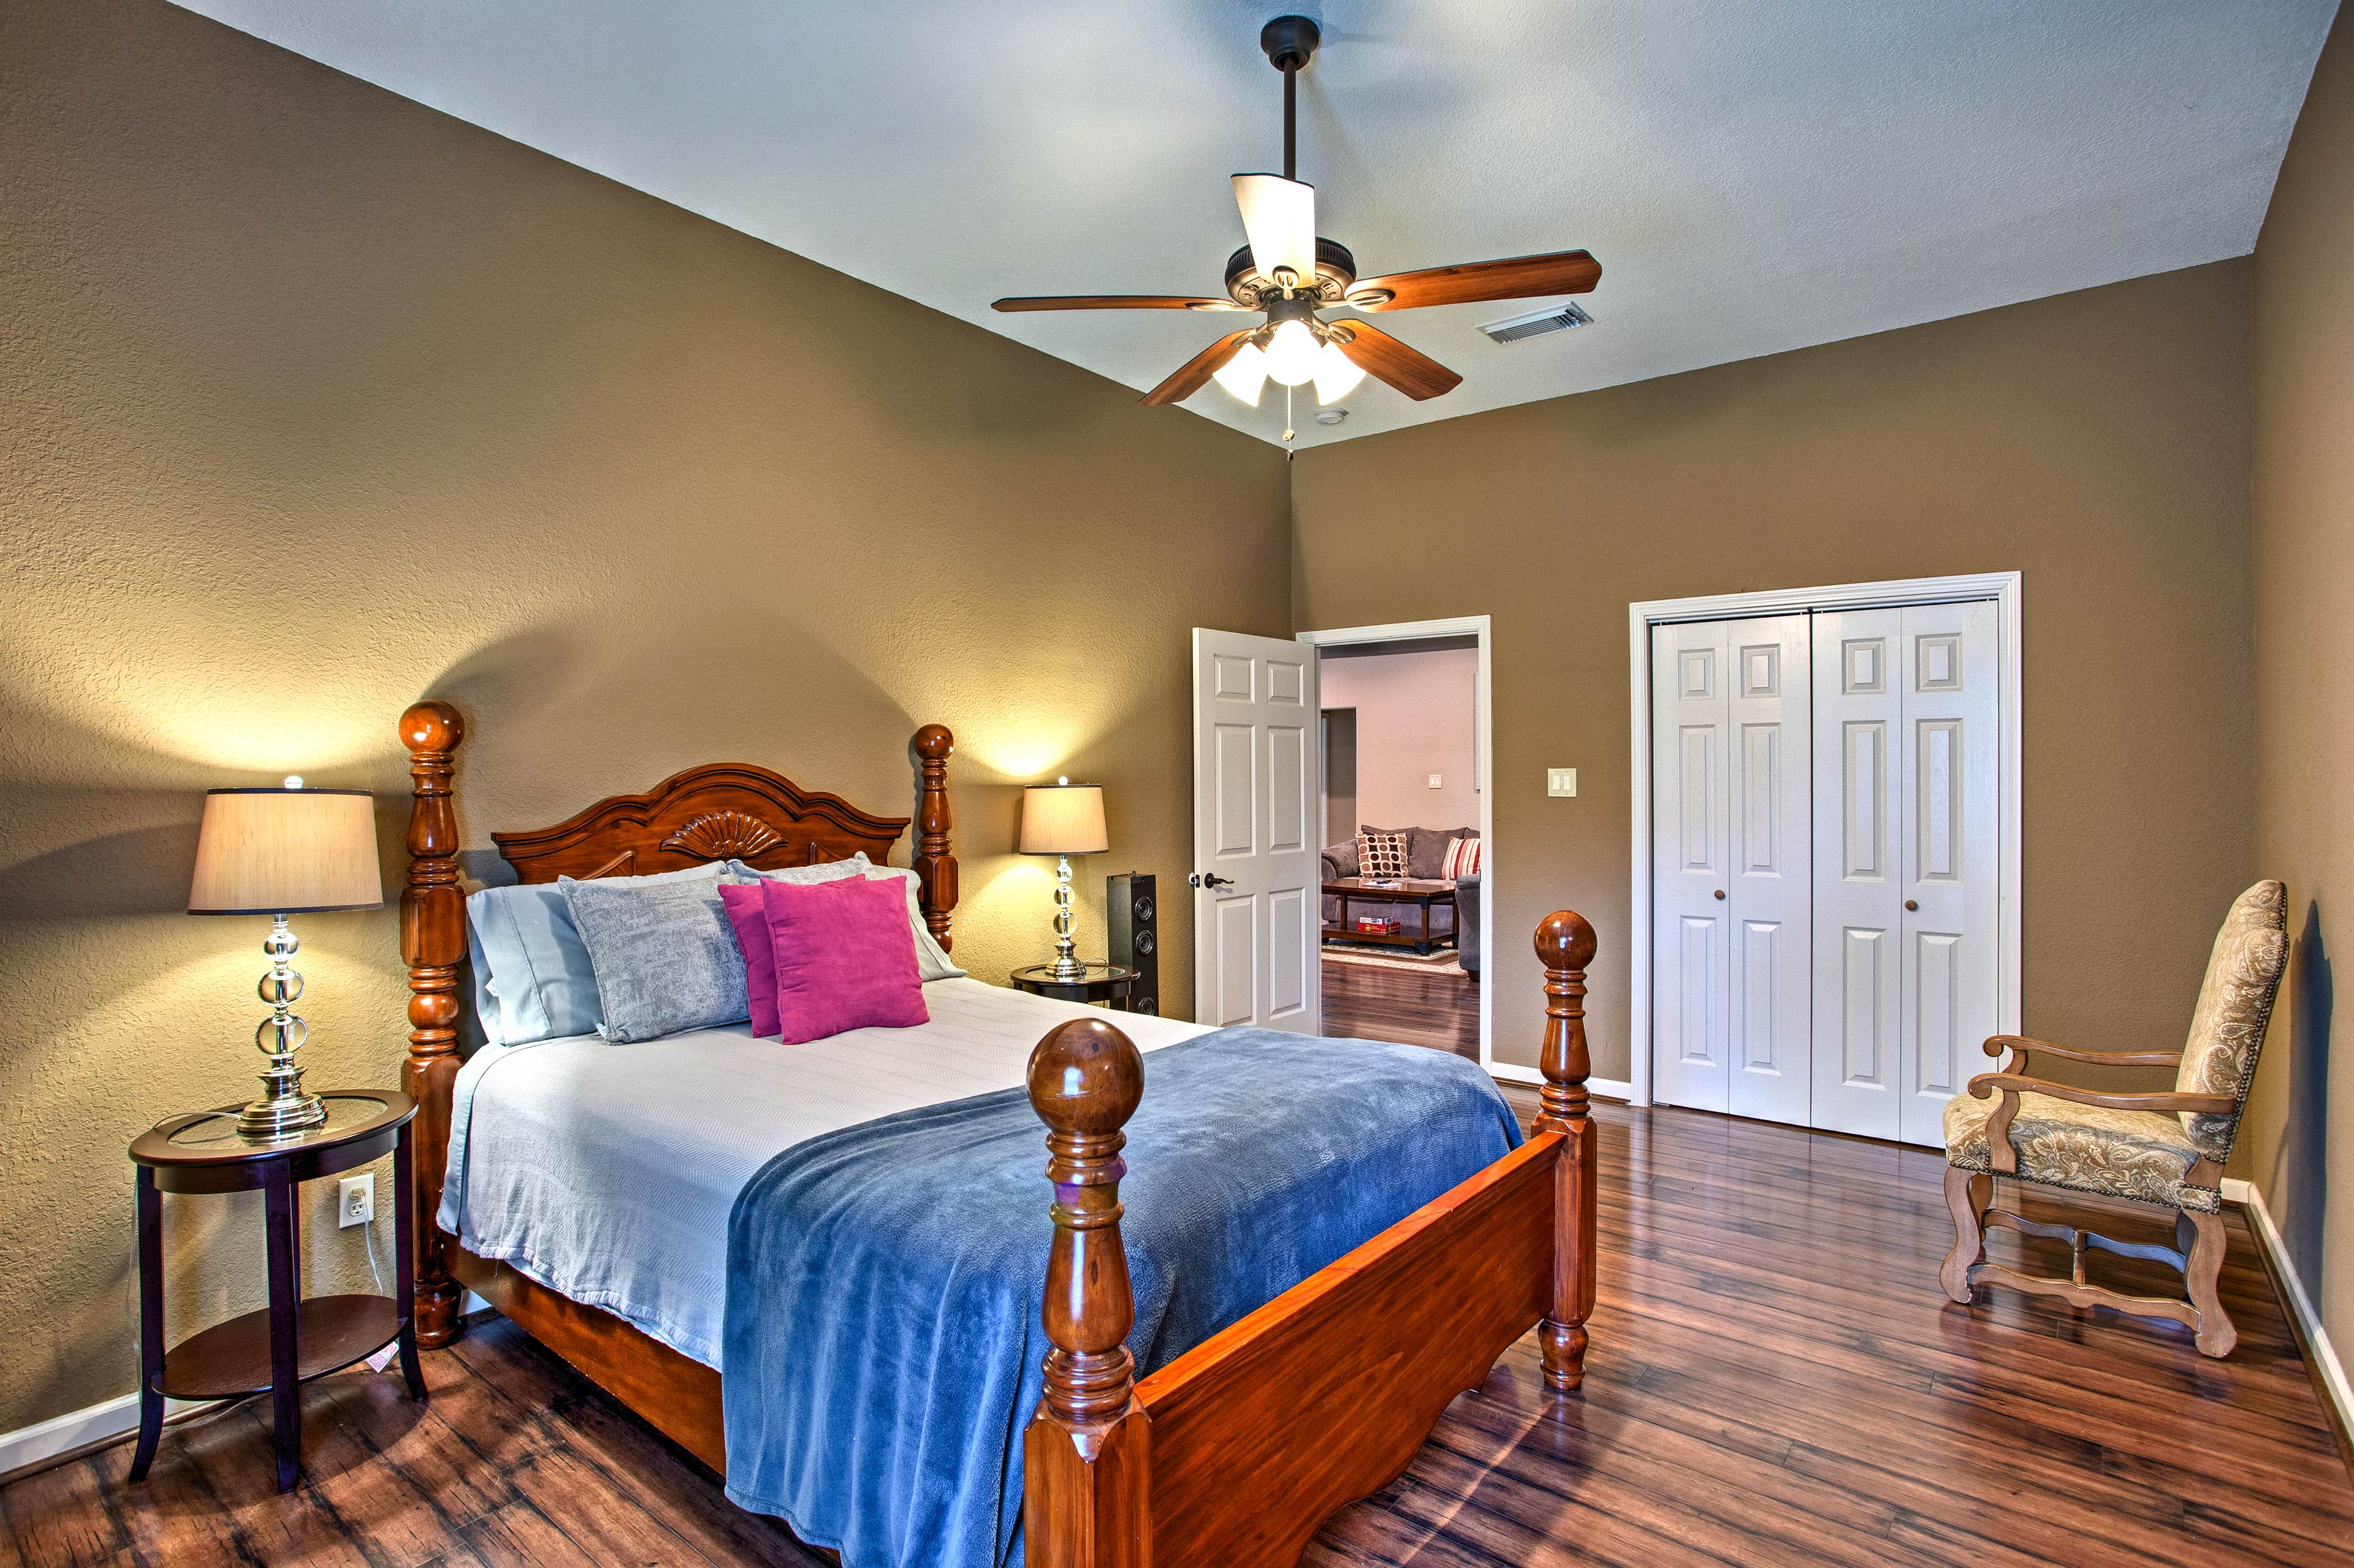 Find a peaceful night's sleep waiting for you in this queen bed!